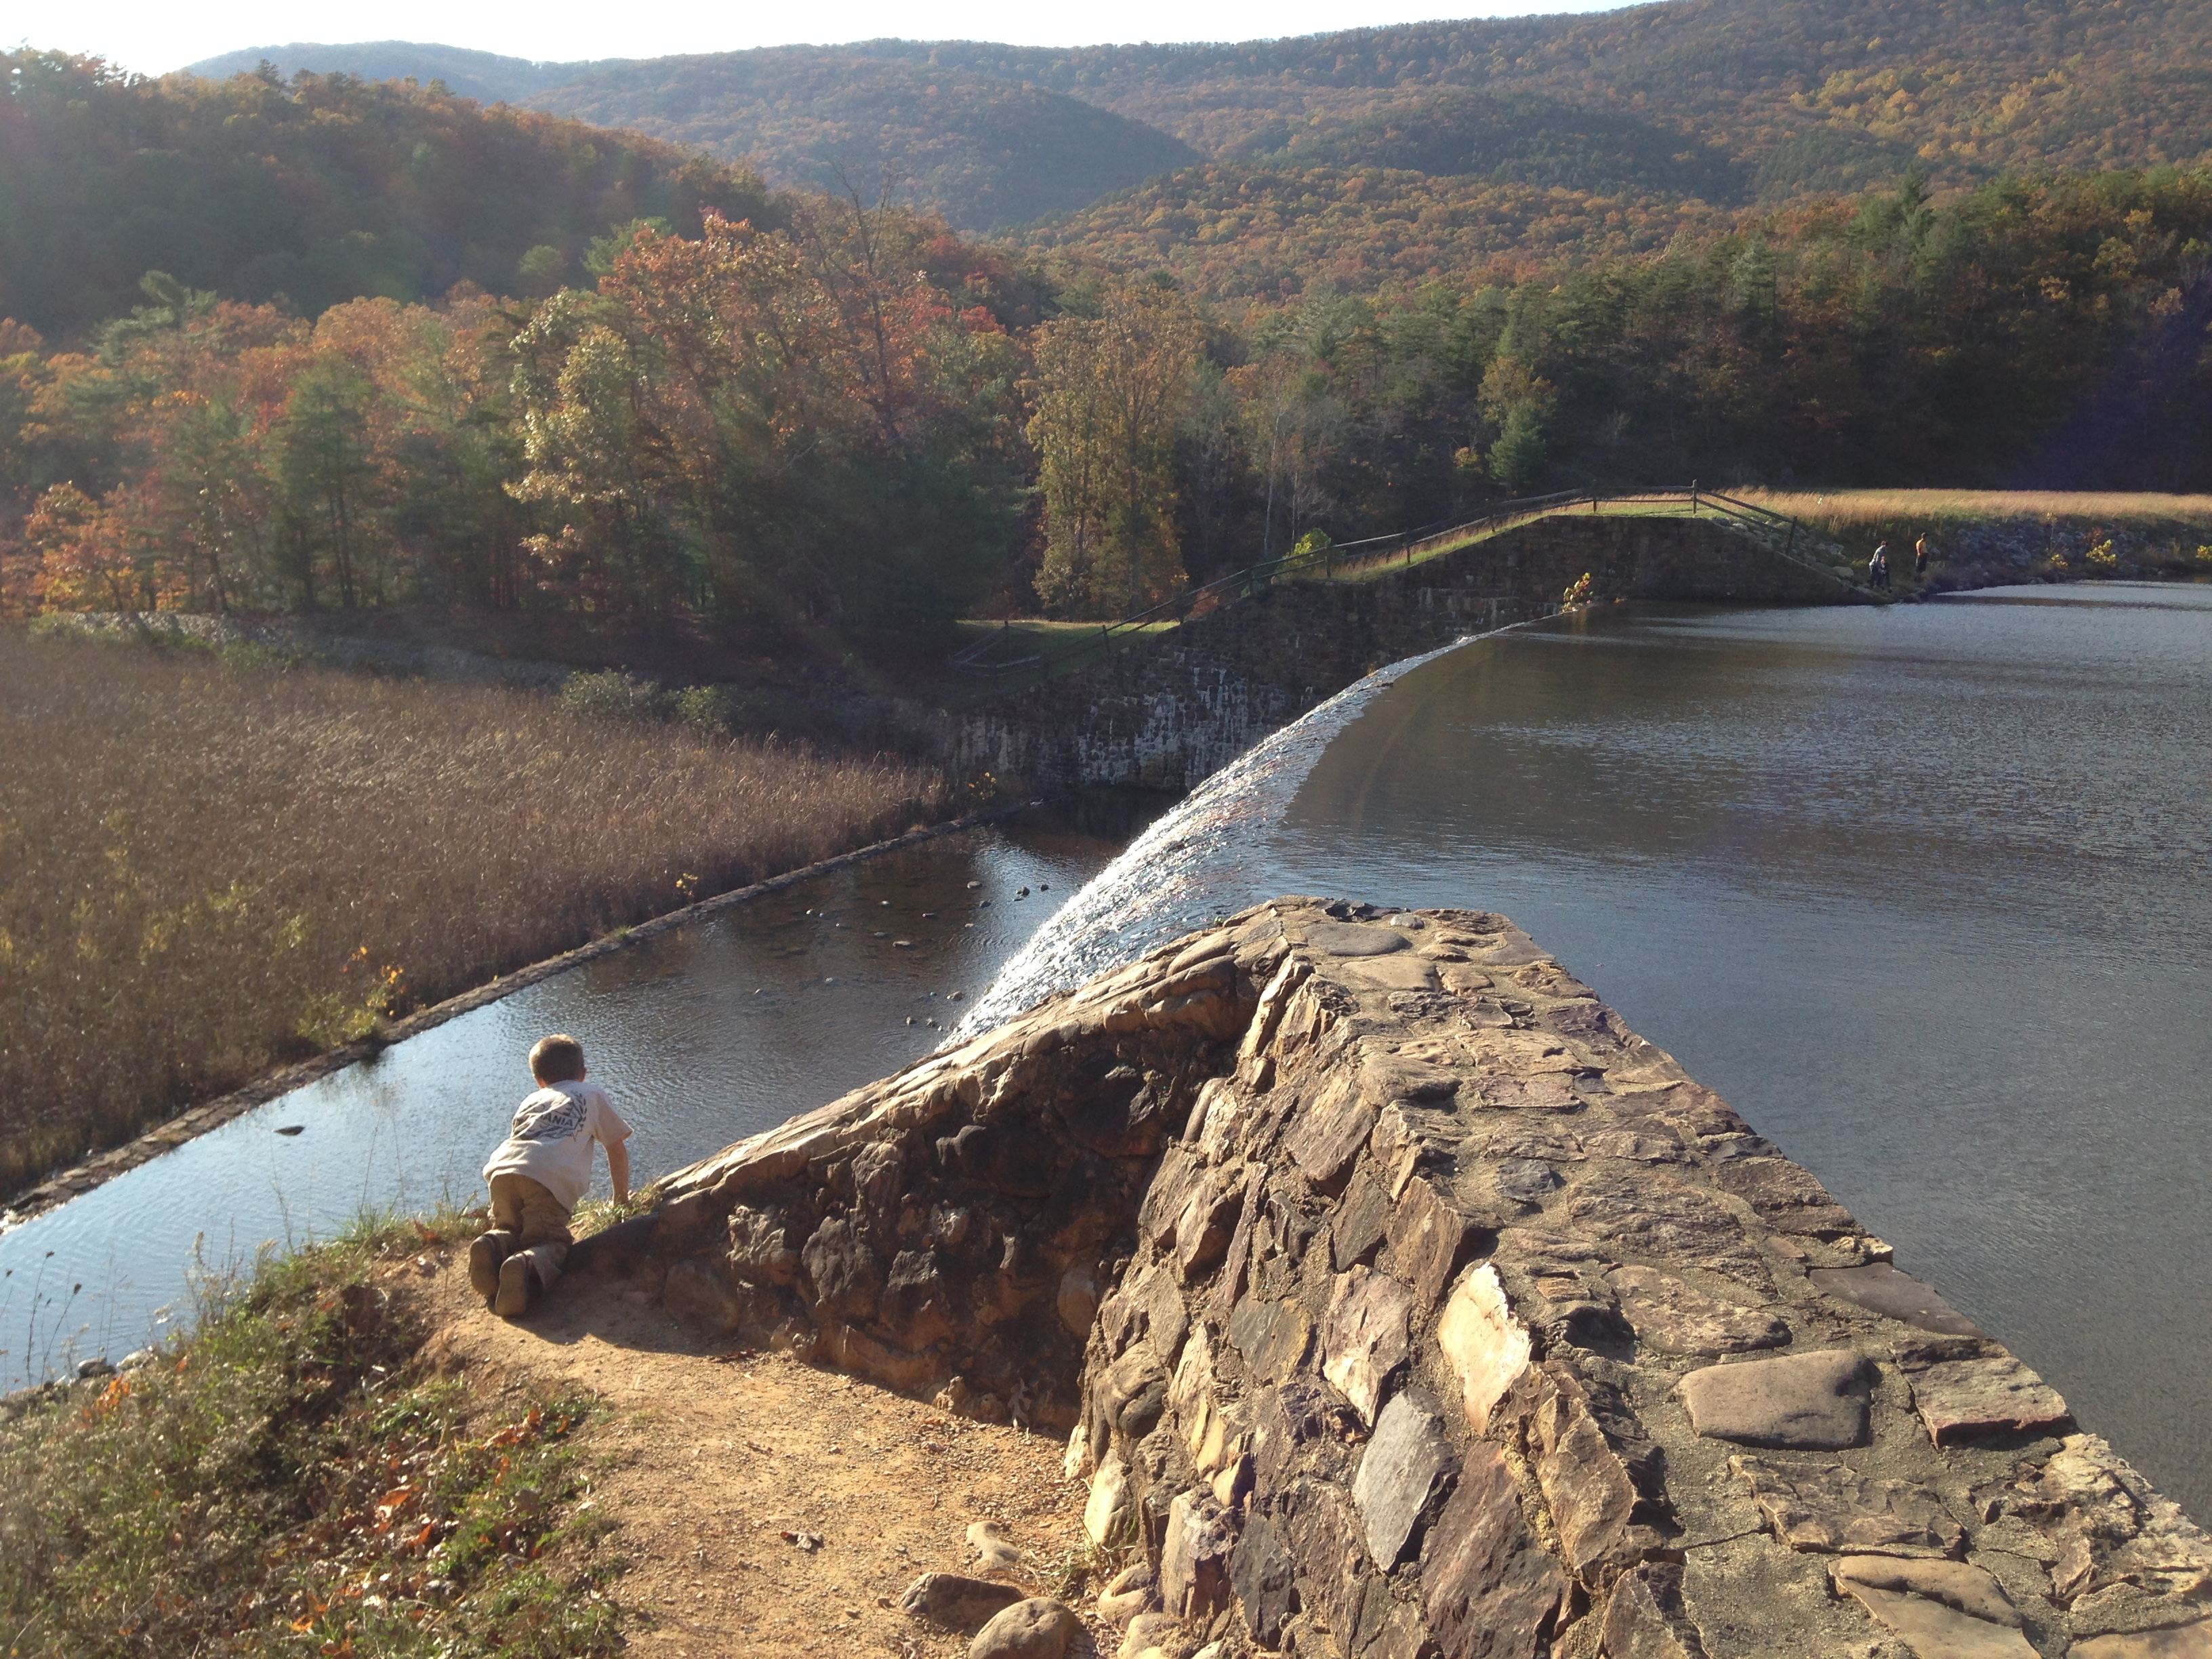 Bryant checking out the dam.